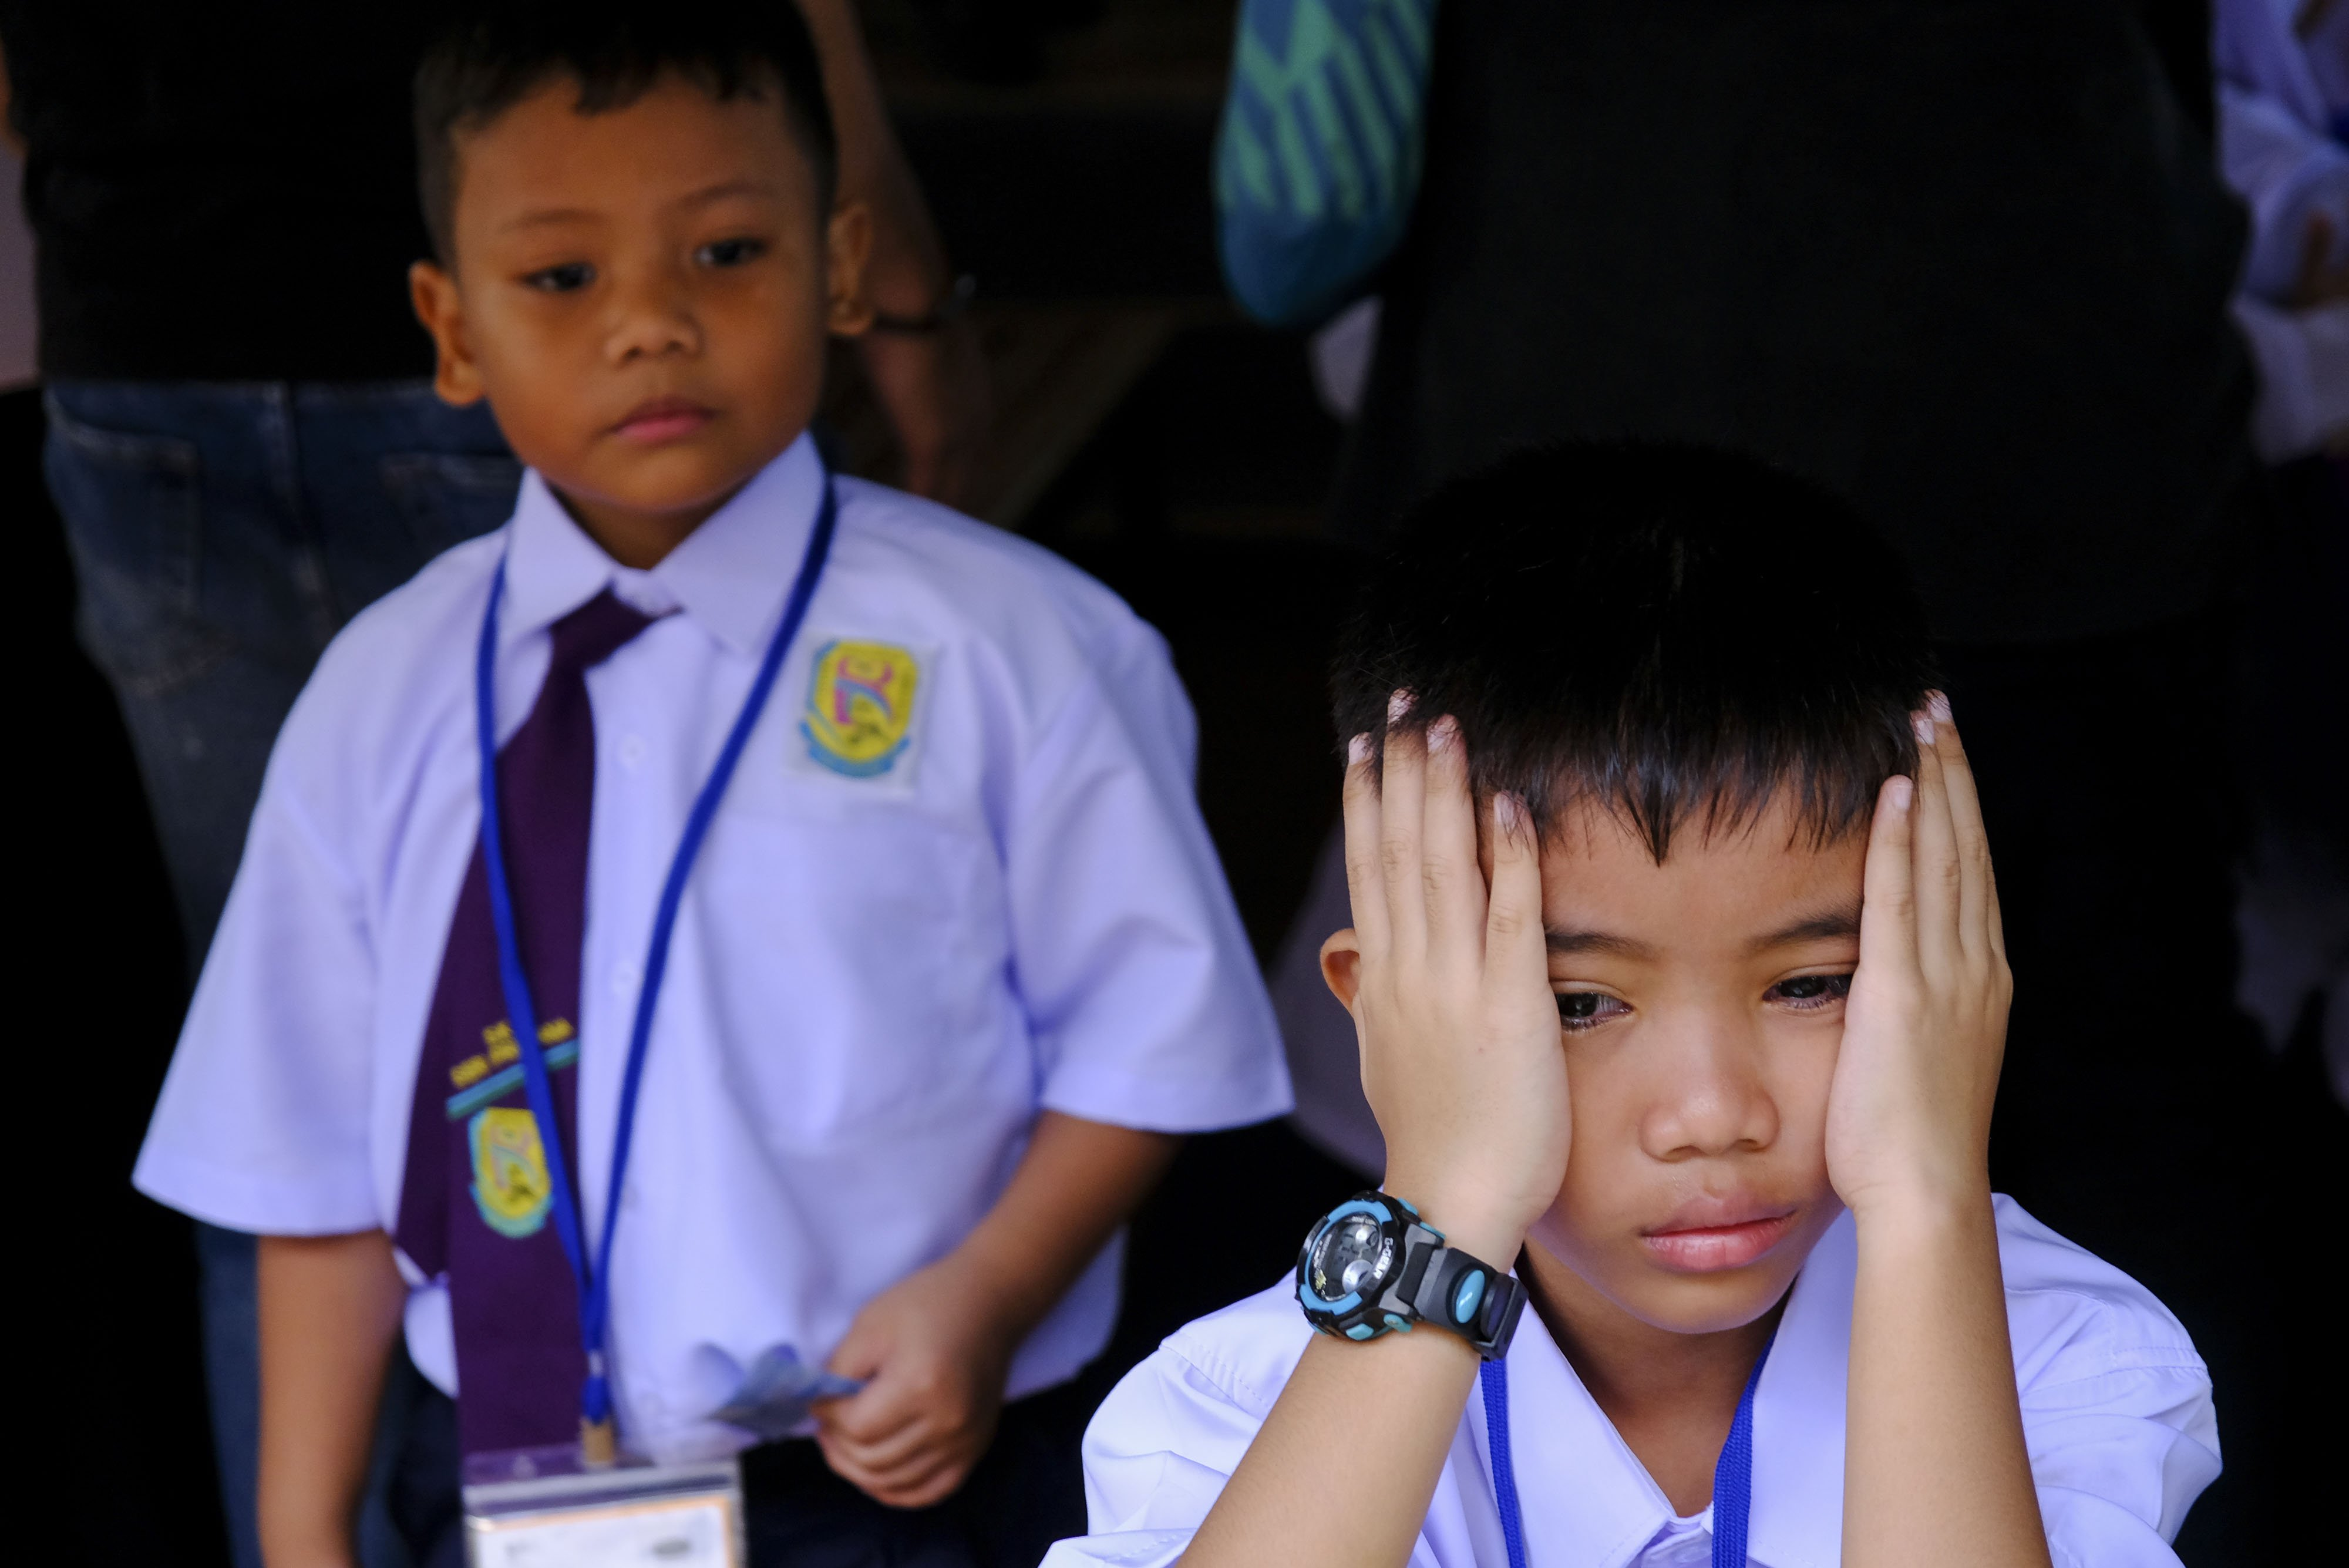 A year one pupil seen on the first day of school at Sk Seri Pristana. Malaysia school student have start their first day of school on 2th January 2020|Photo: Getty Images